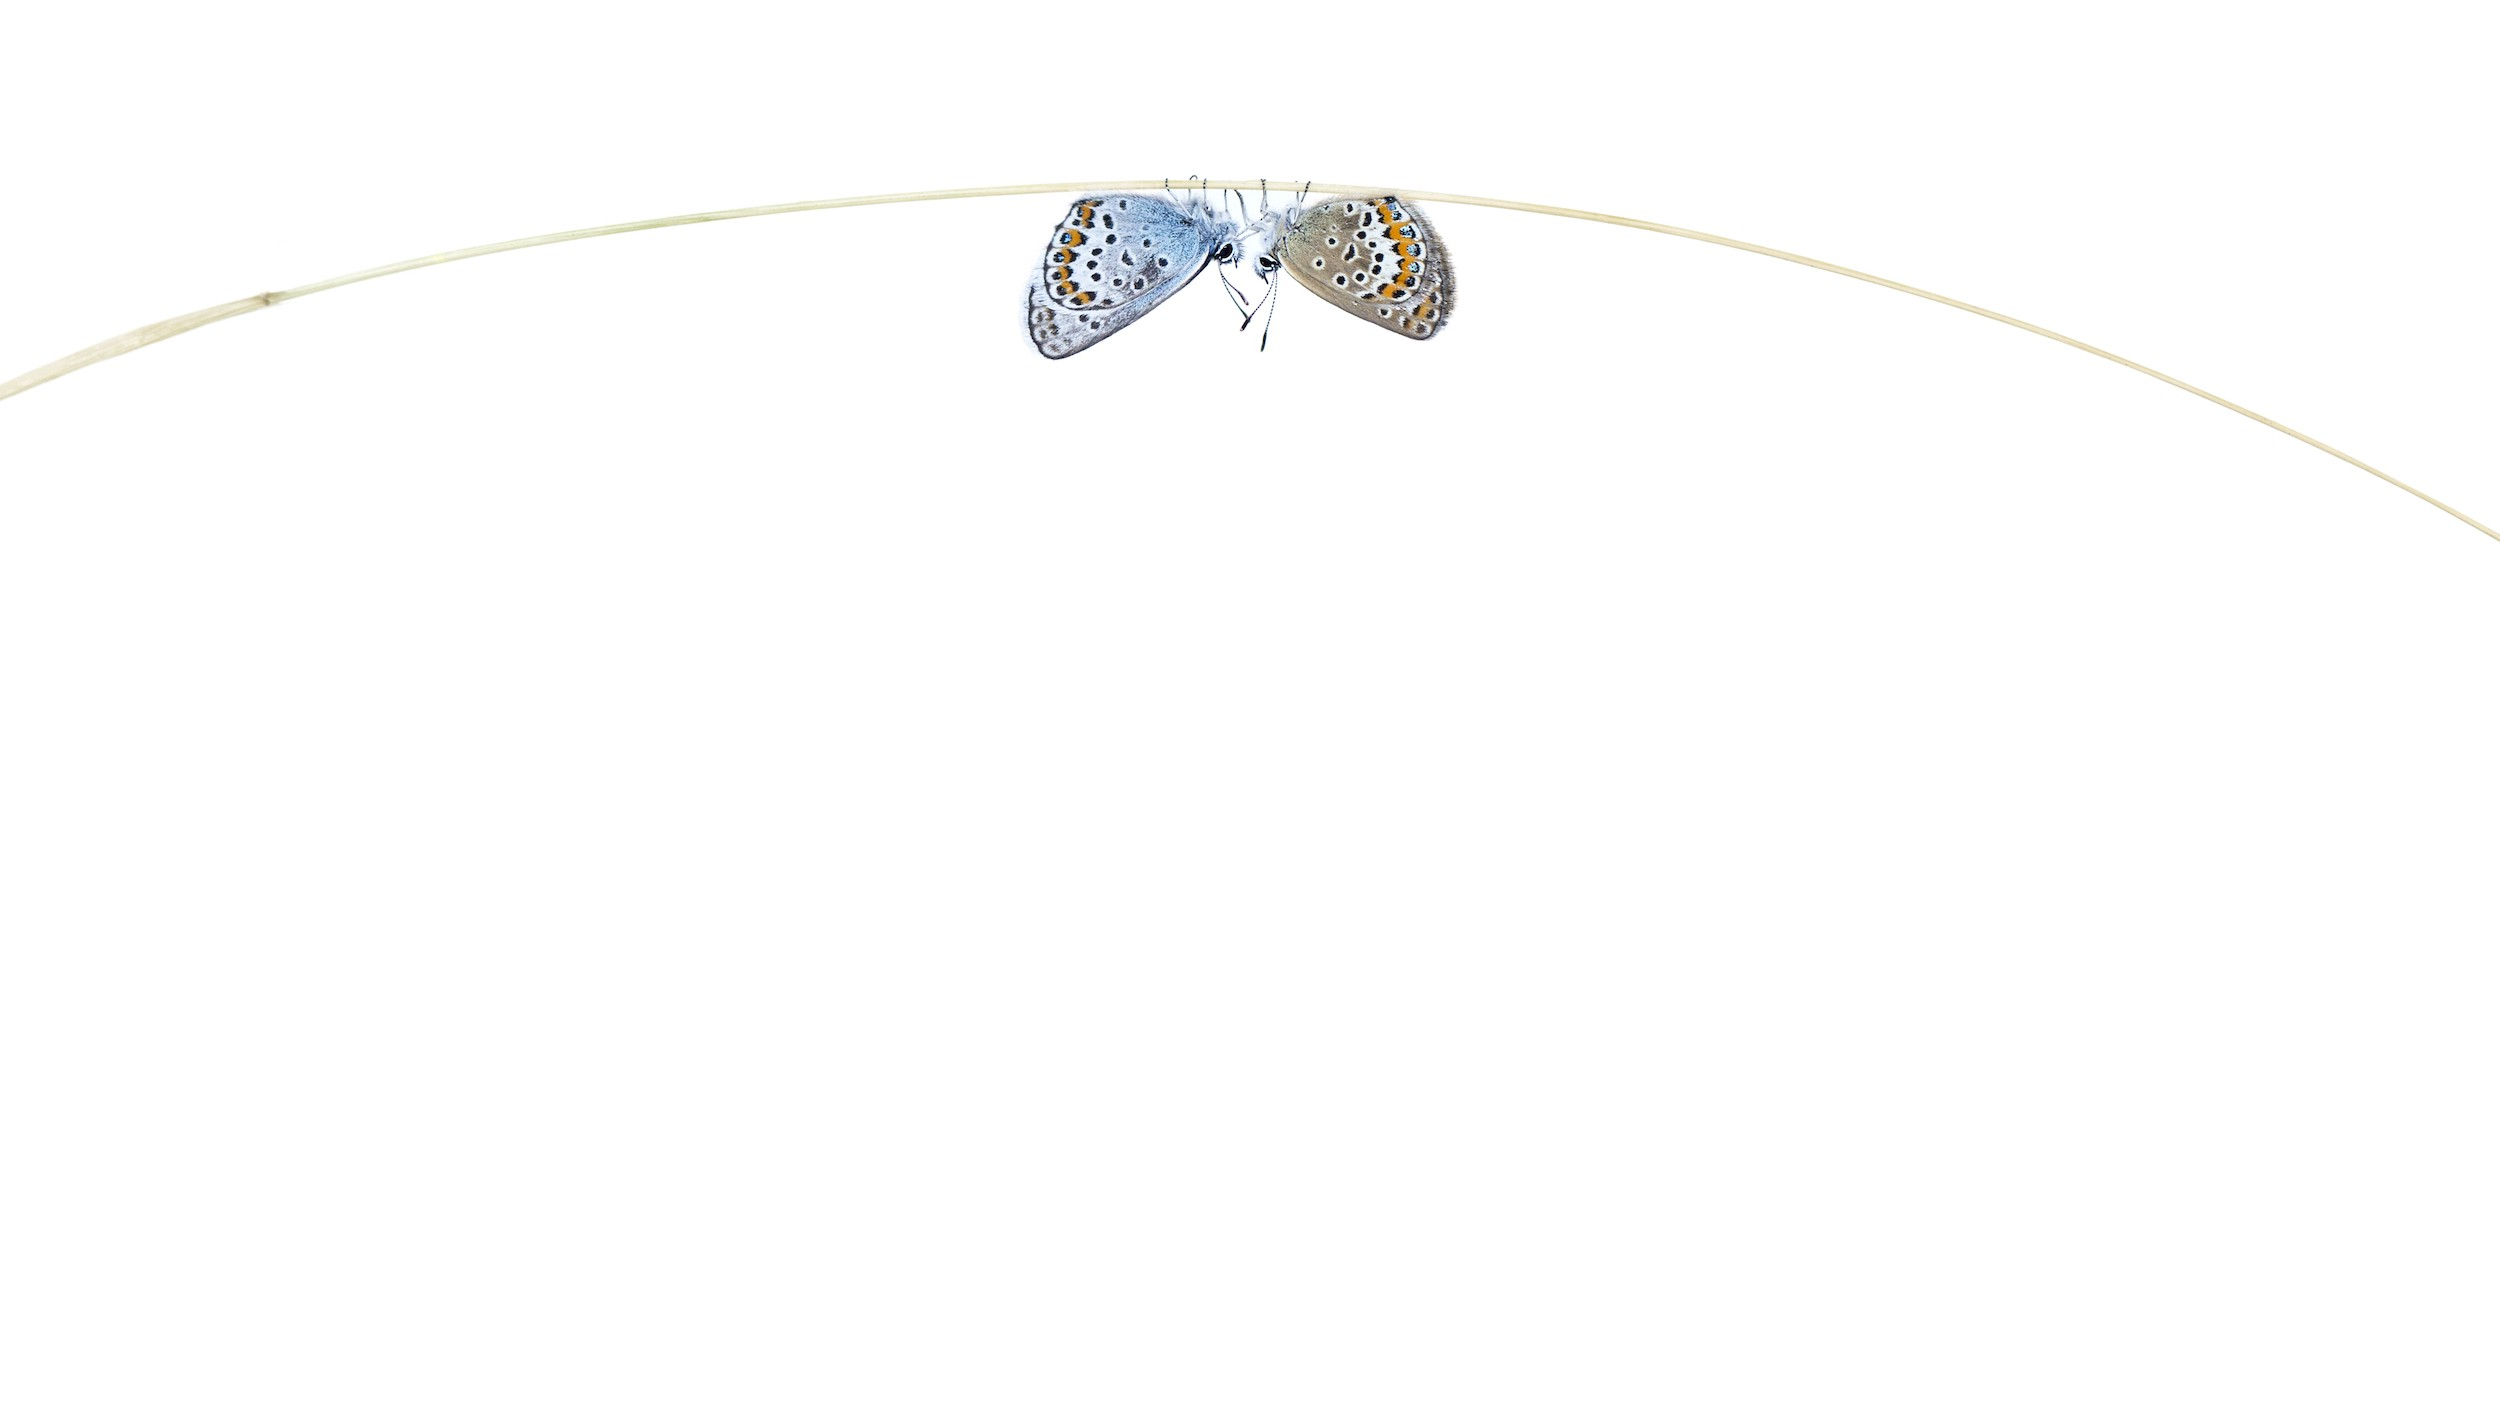 Two butterflies are photographed touching feelers, upside down hanging on something and on a bright white background